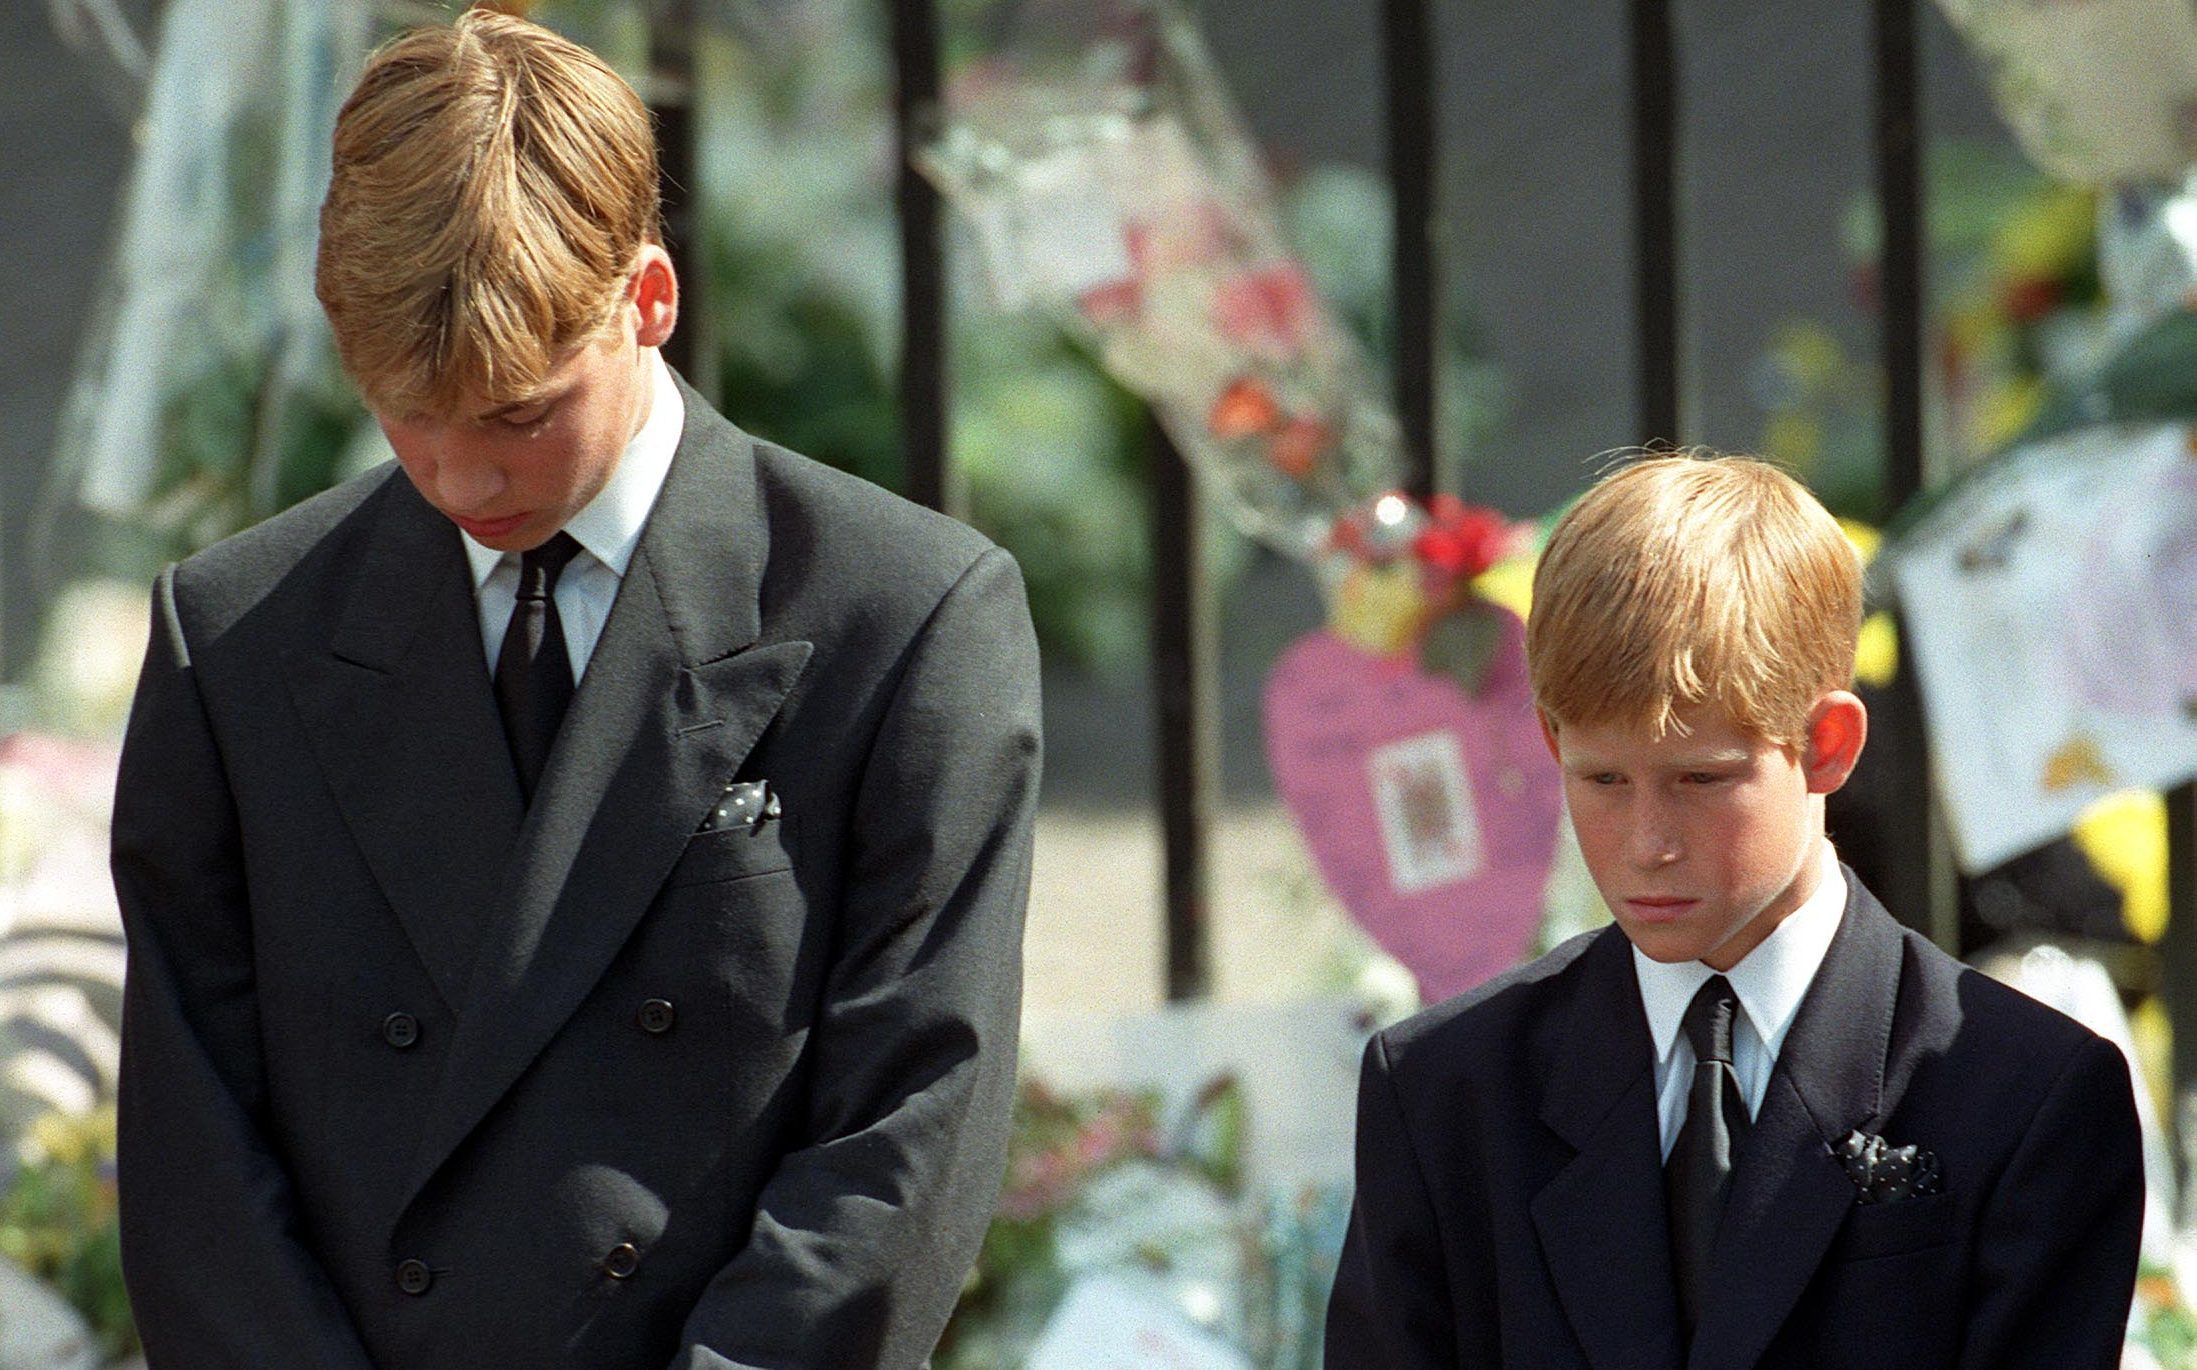 Prince William (left) and Prince Harry, the sons of Diana, Princess of Wales, bow their heads as their mother's coffin is taken out of Westminster Abbey following her funeral service (Adam Butler/PA Wire)